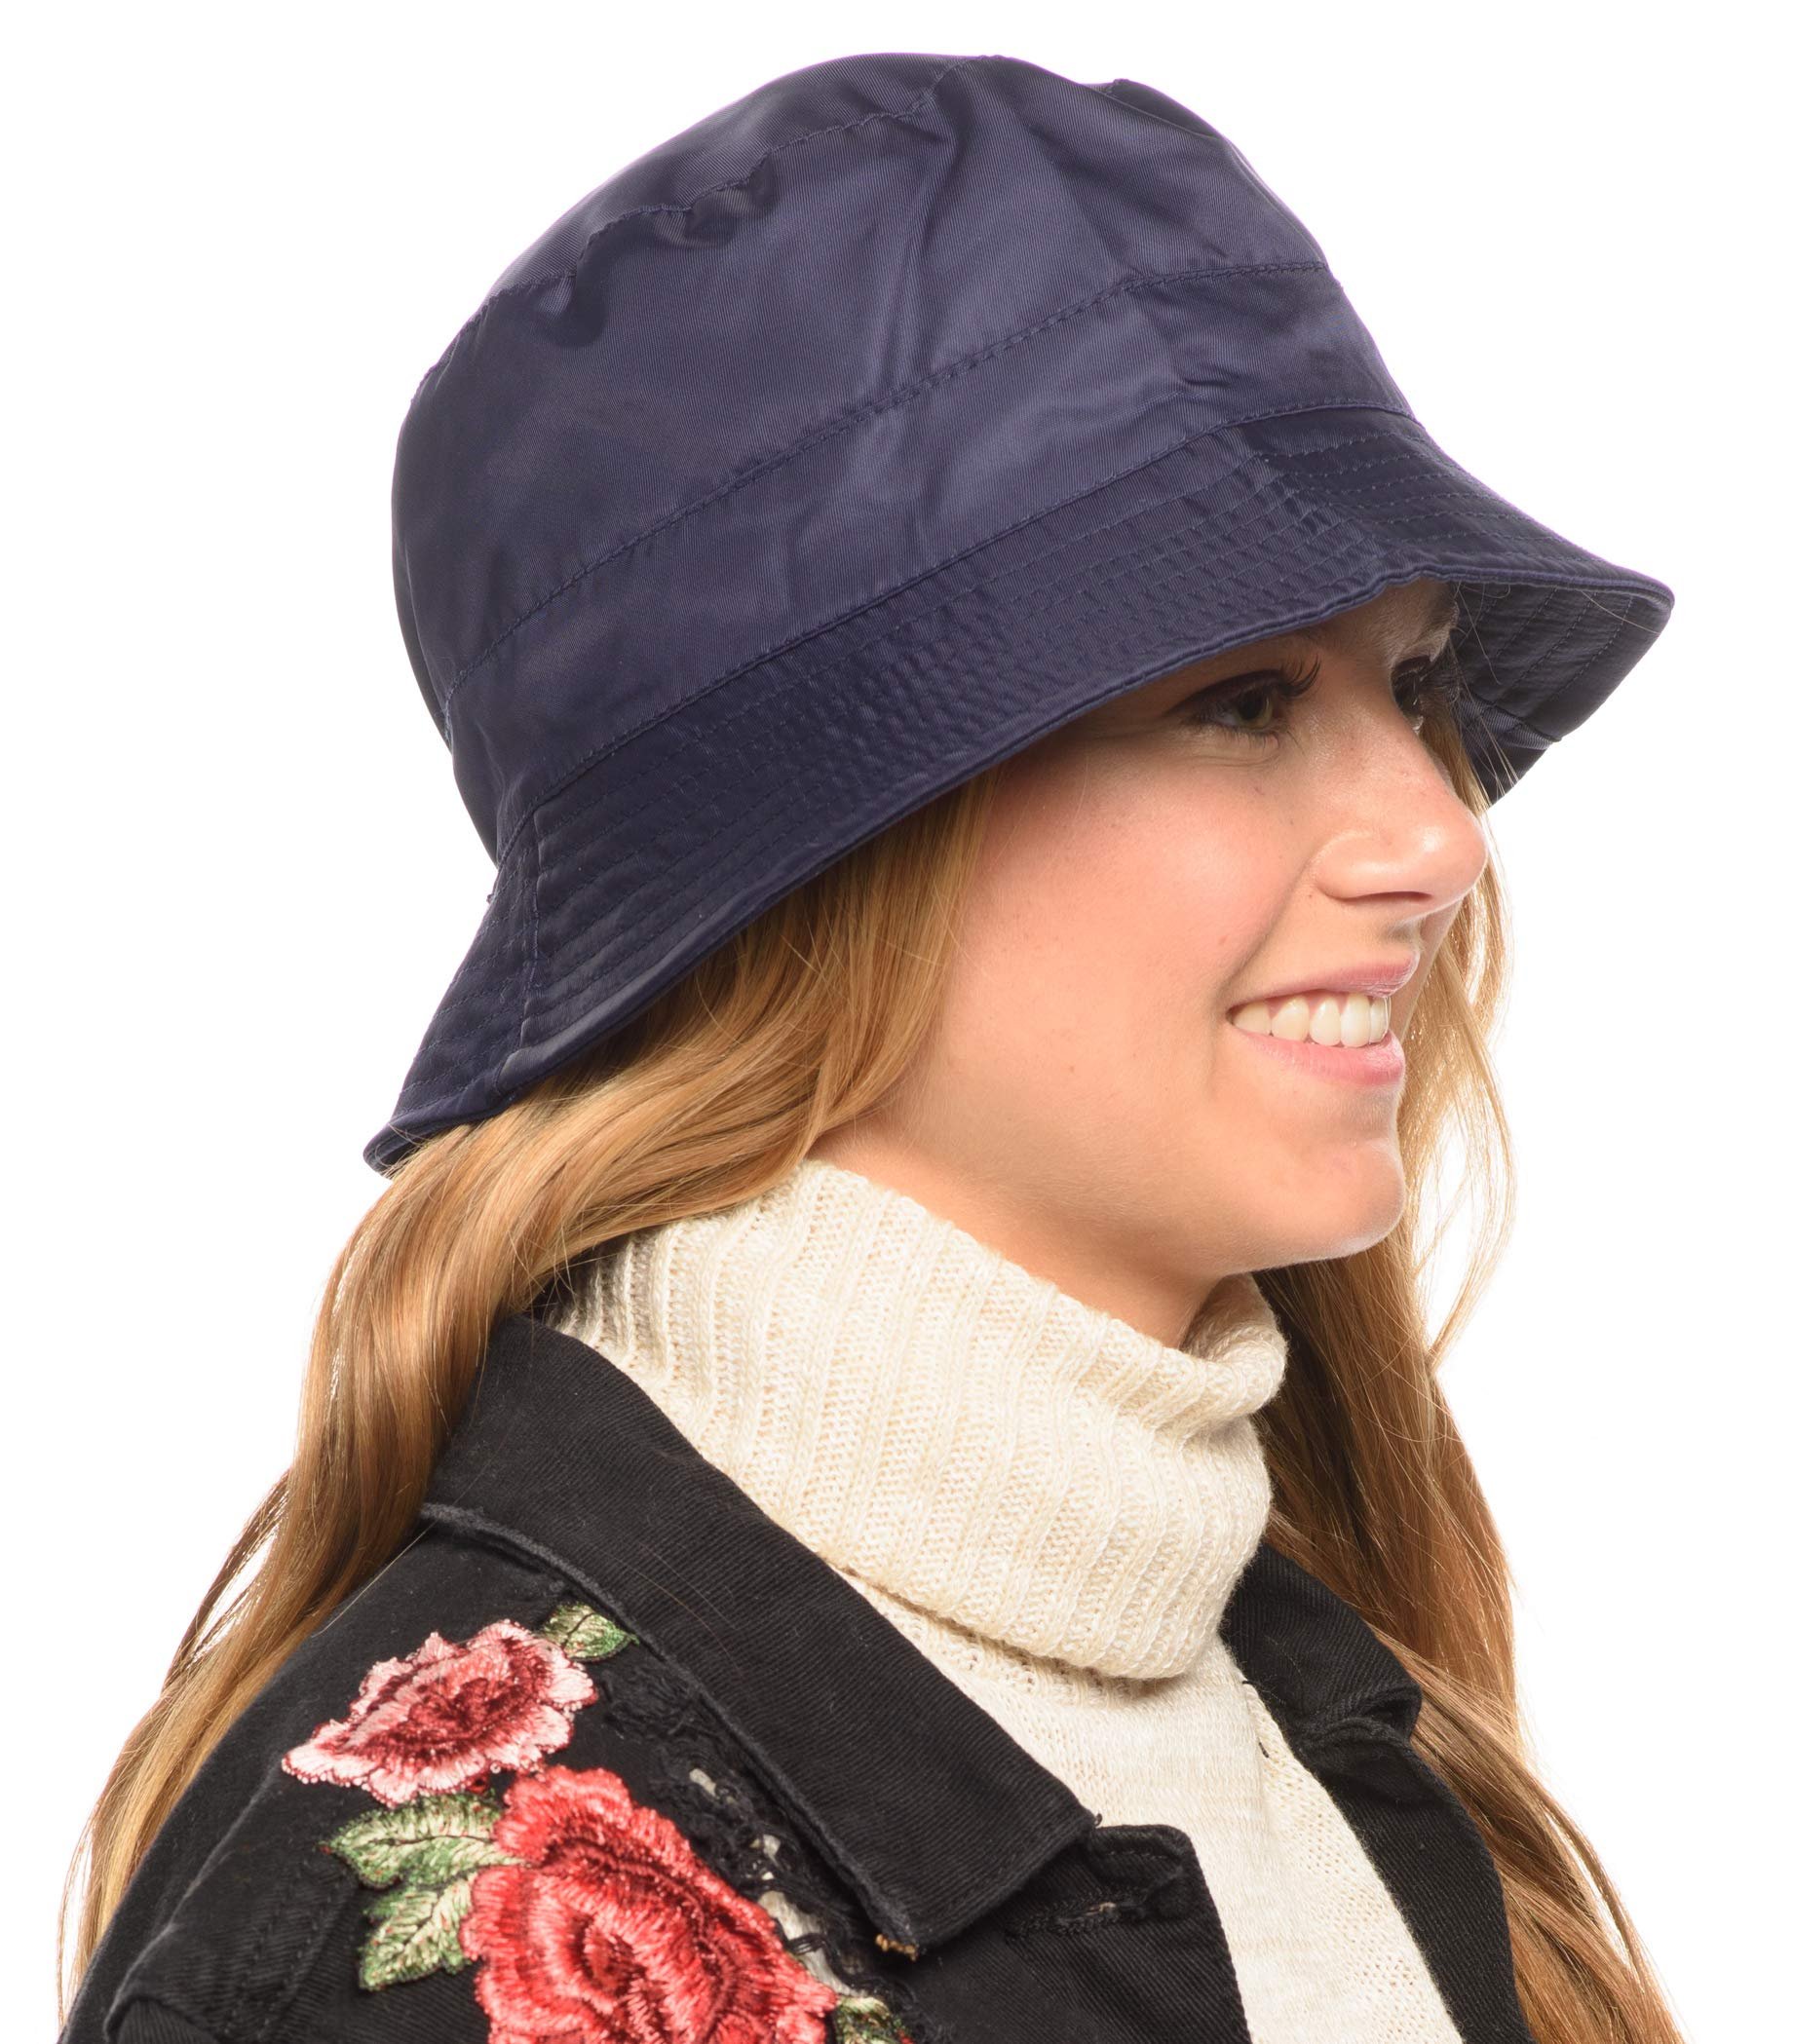 Adjustable Waterproof Bucket Rain Hat in Nylon, Easy to fold (A Navy) by ANGELA & WILLIAM